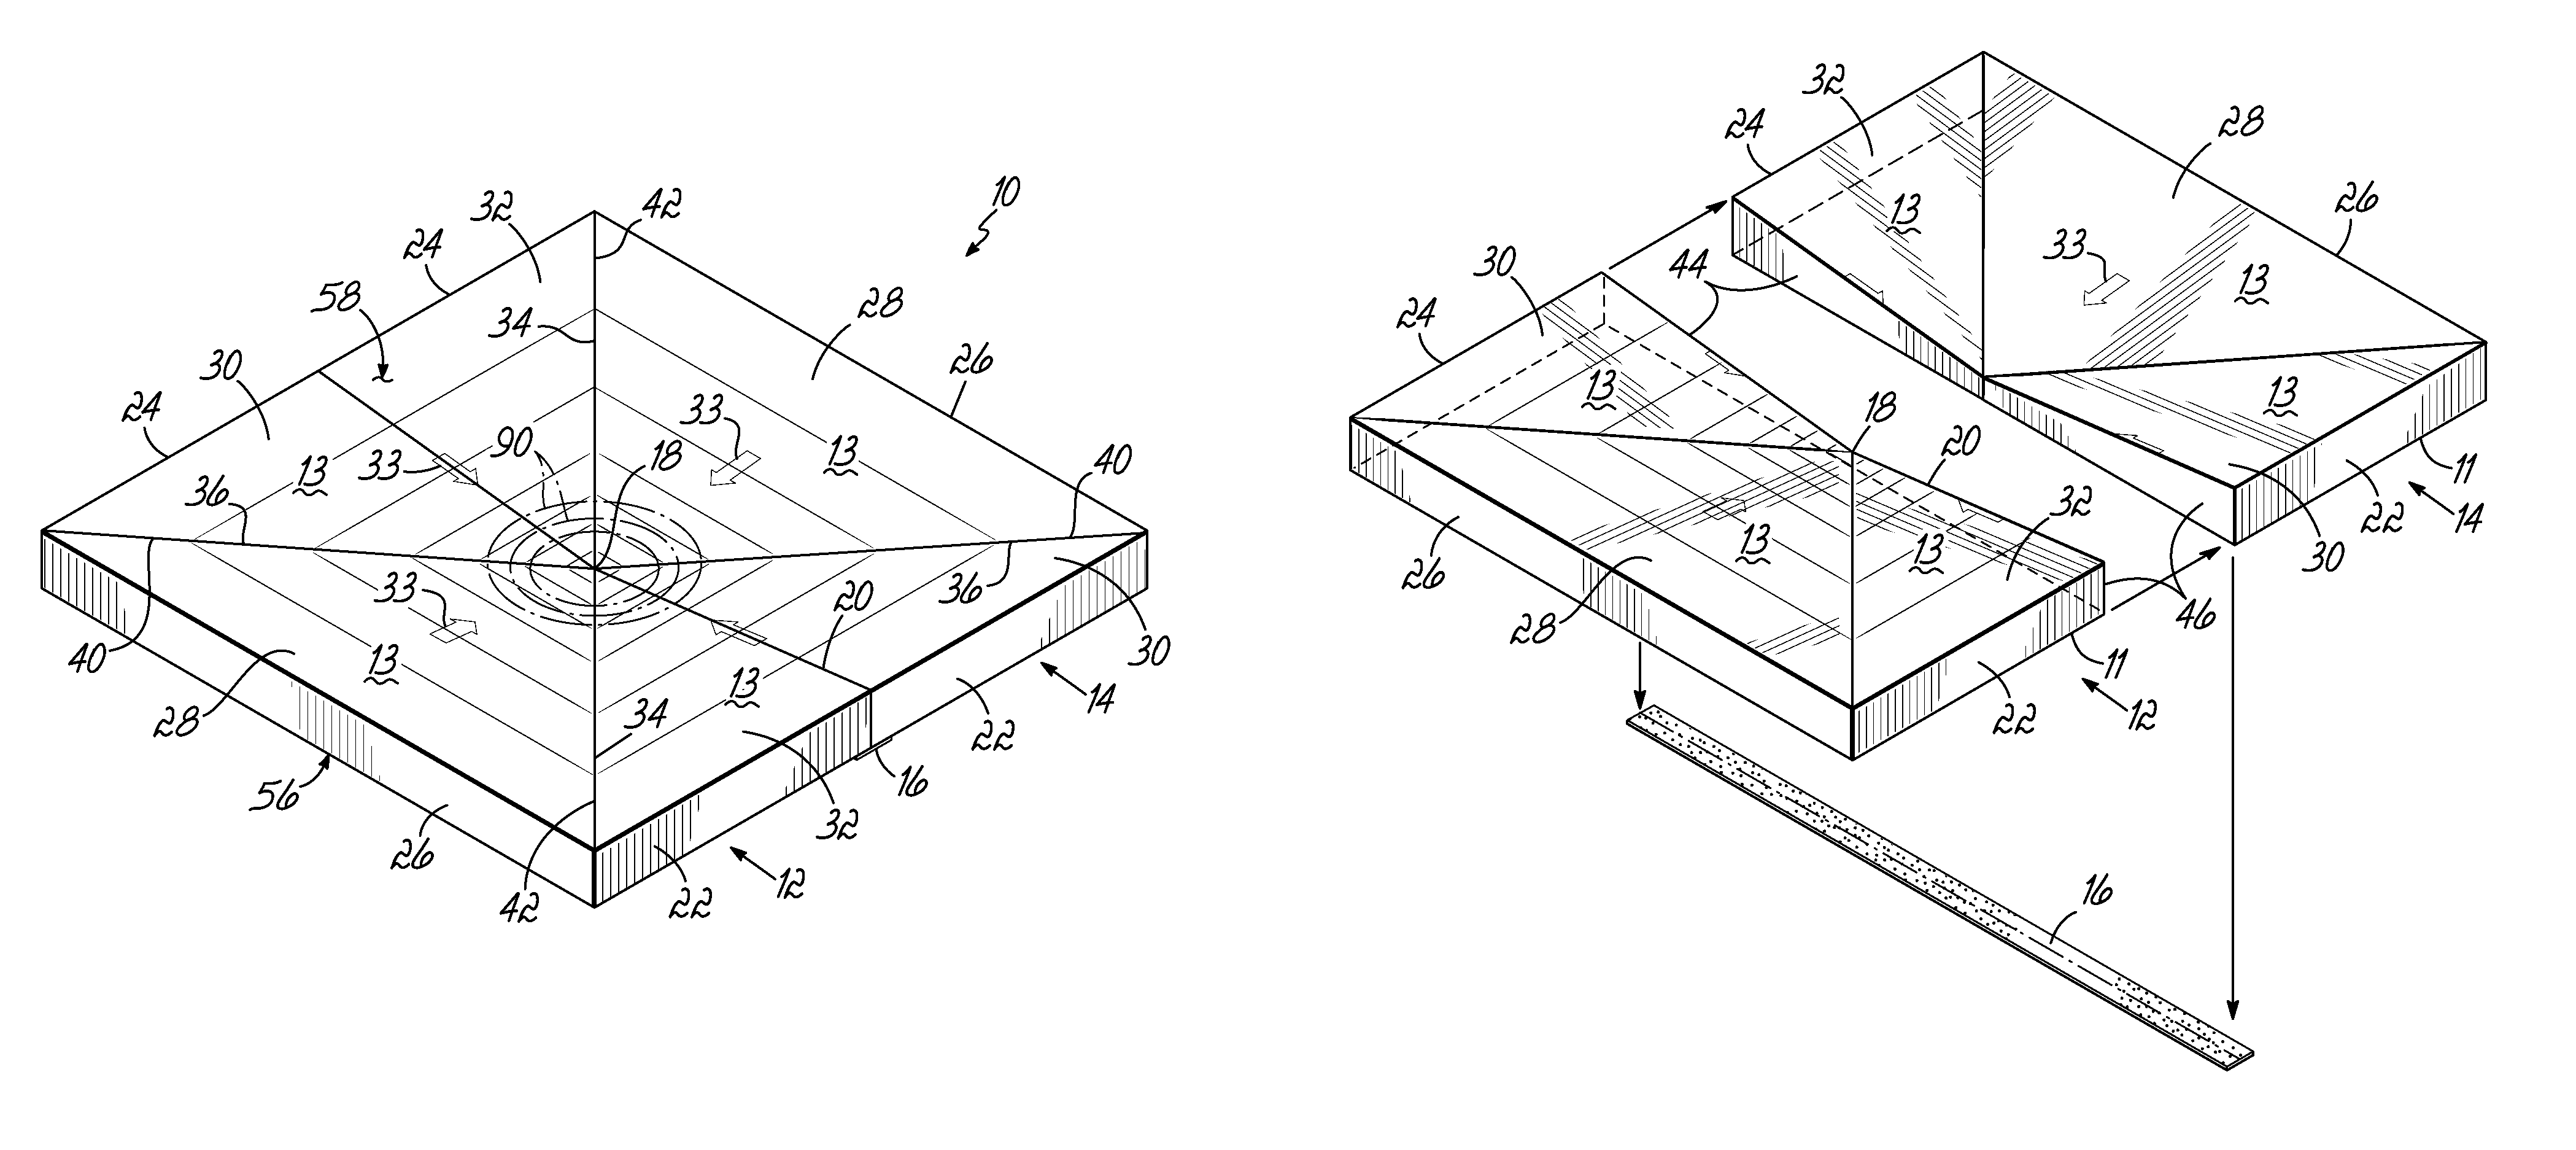 Patent us8365487 roof sump structure google patents for Roof drawing app